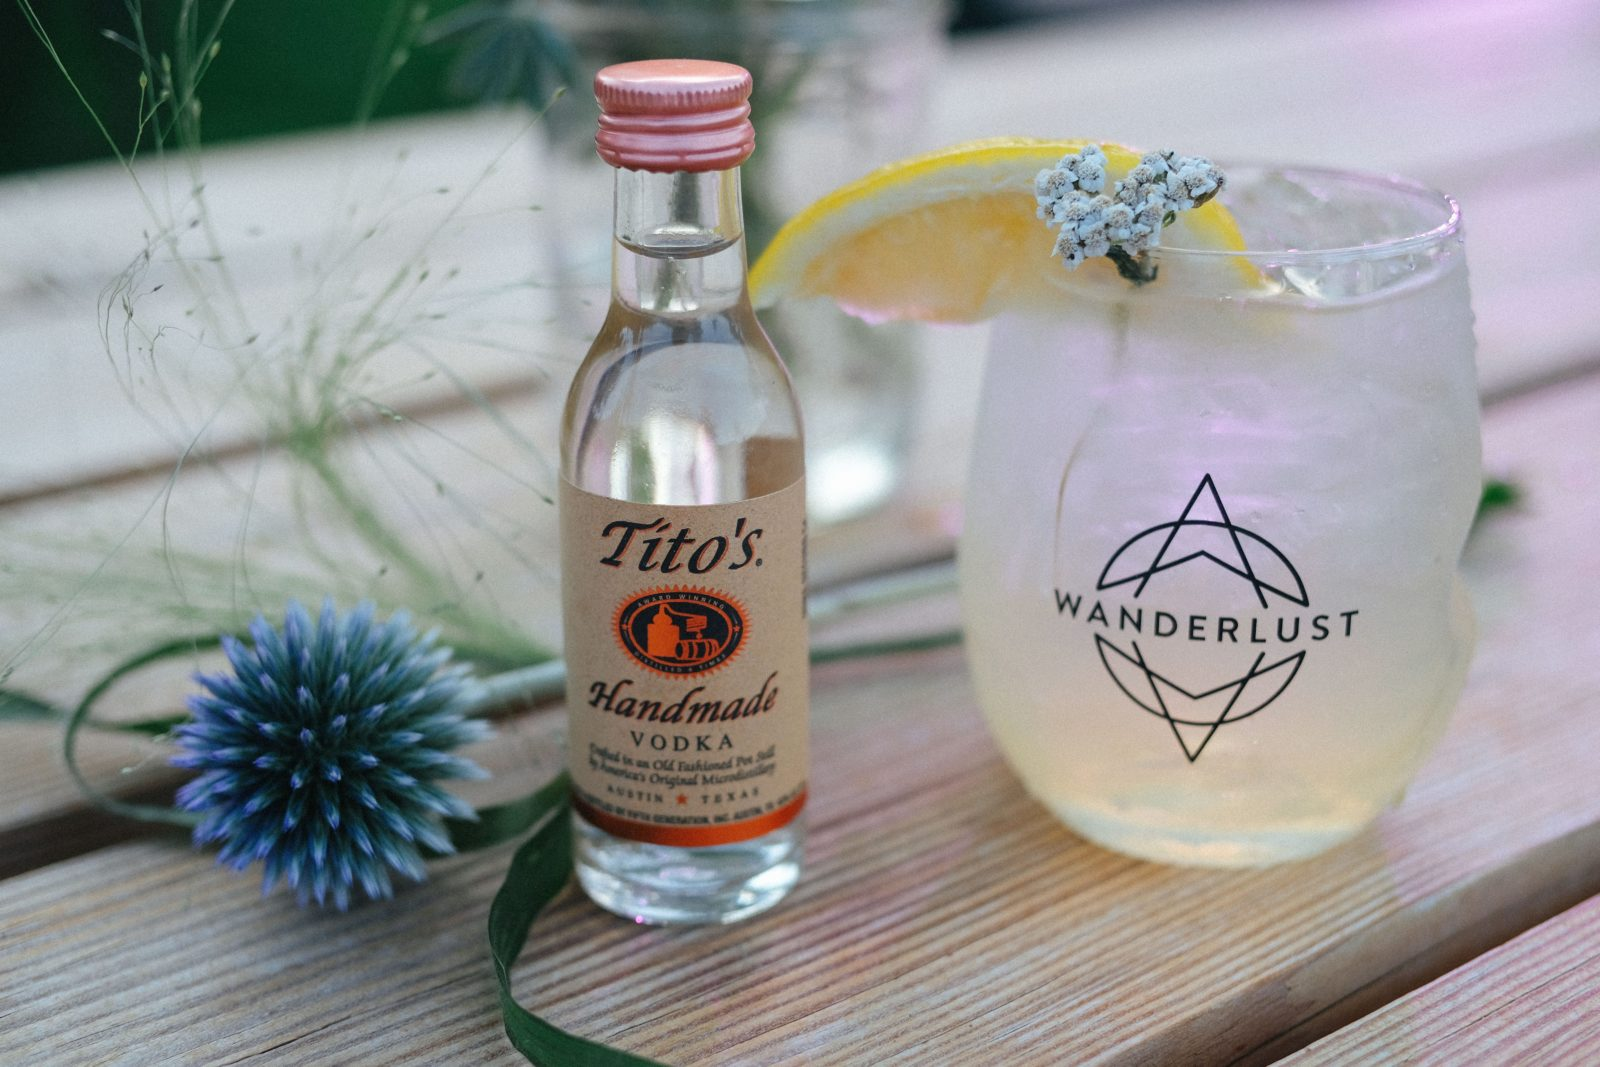 The Story Behind First Descents And Tito's Handmade Vodka